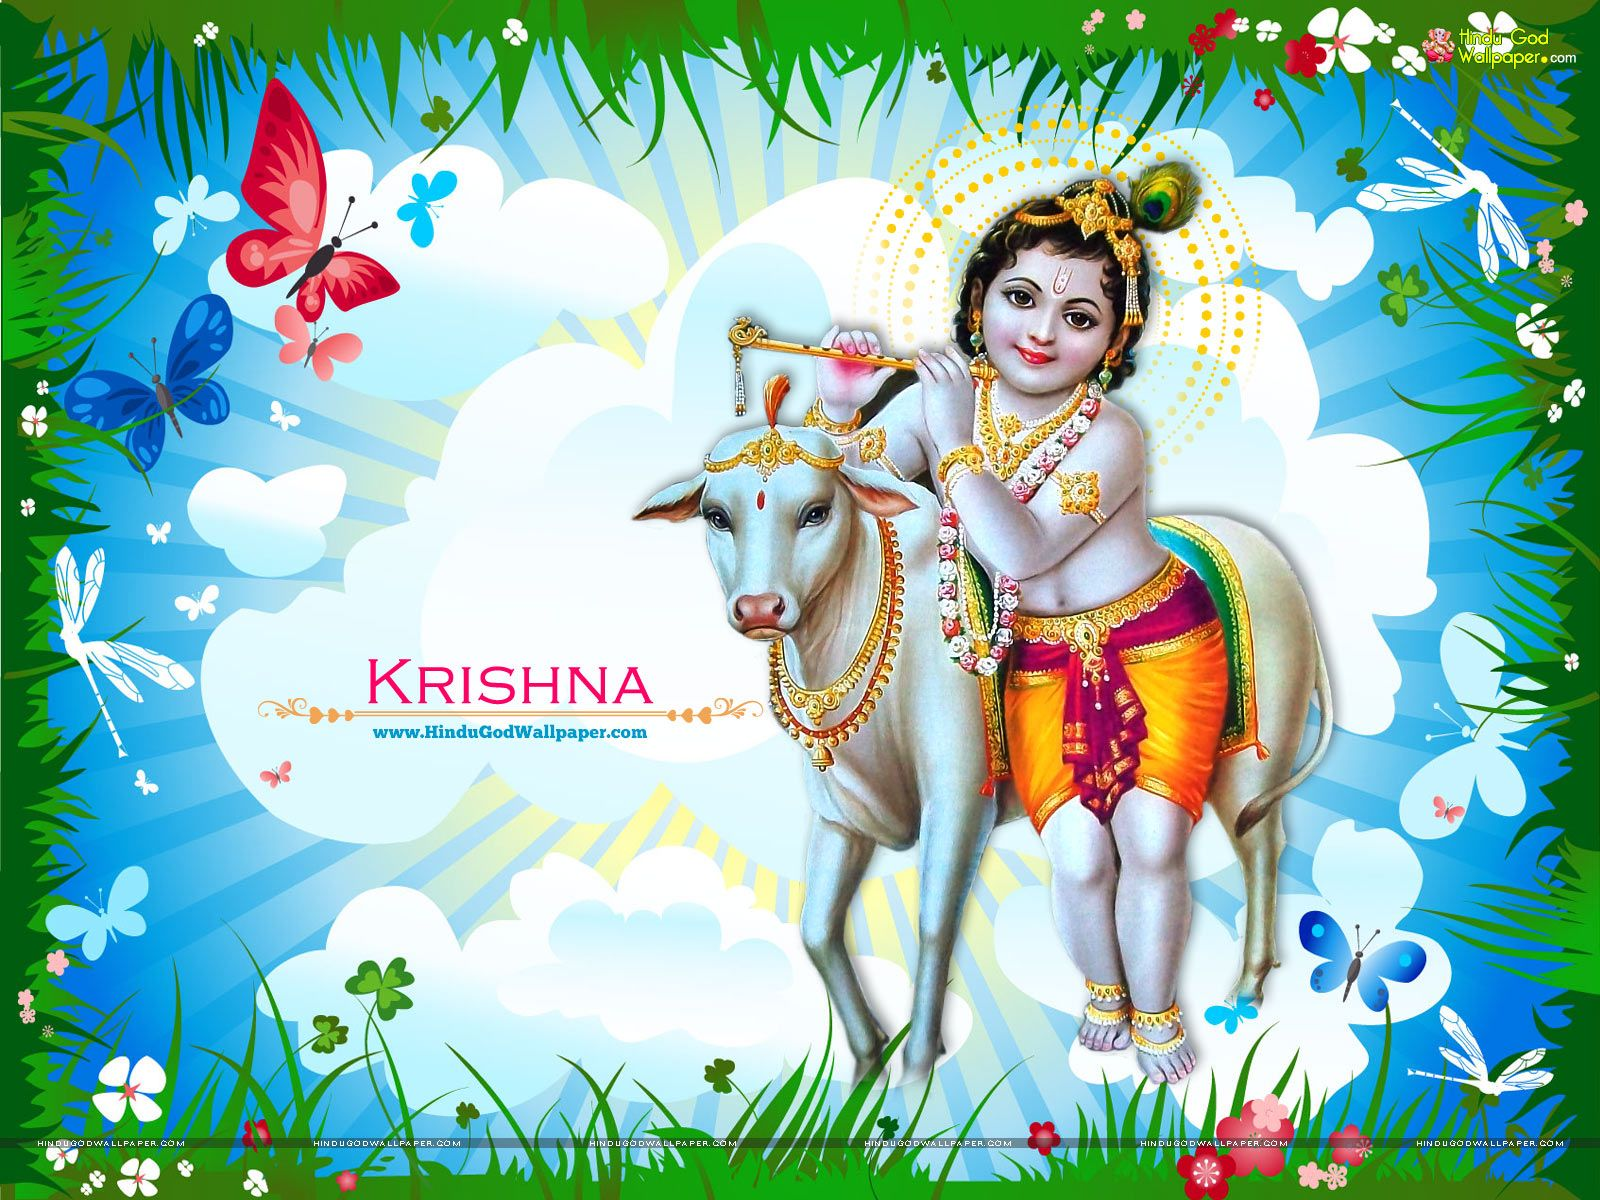 Shri Krishna Live Wallpaper Free Download With Images Lord